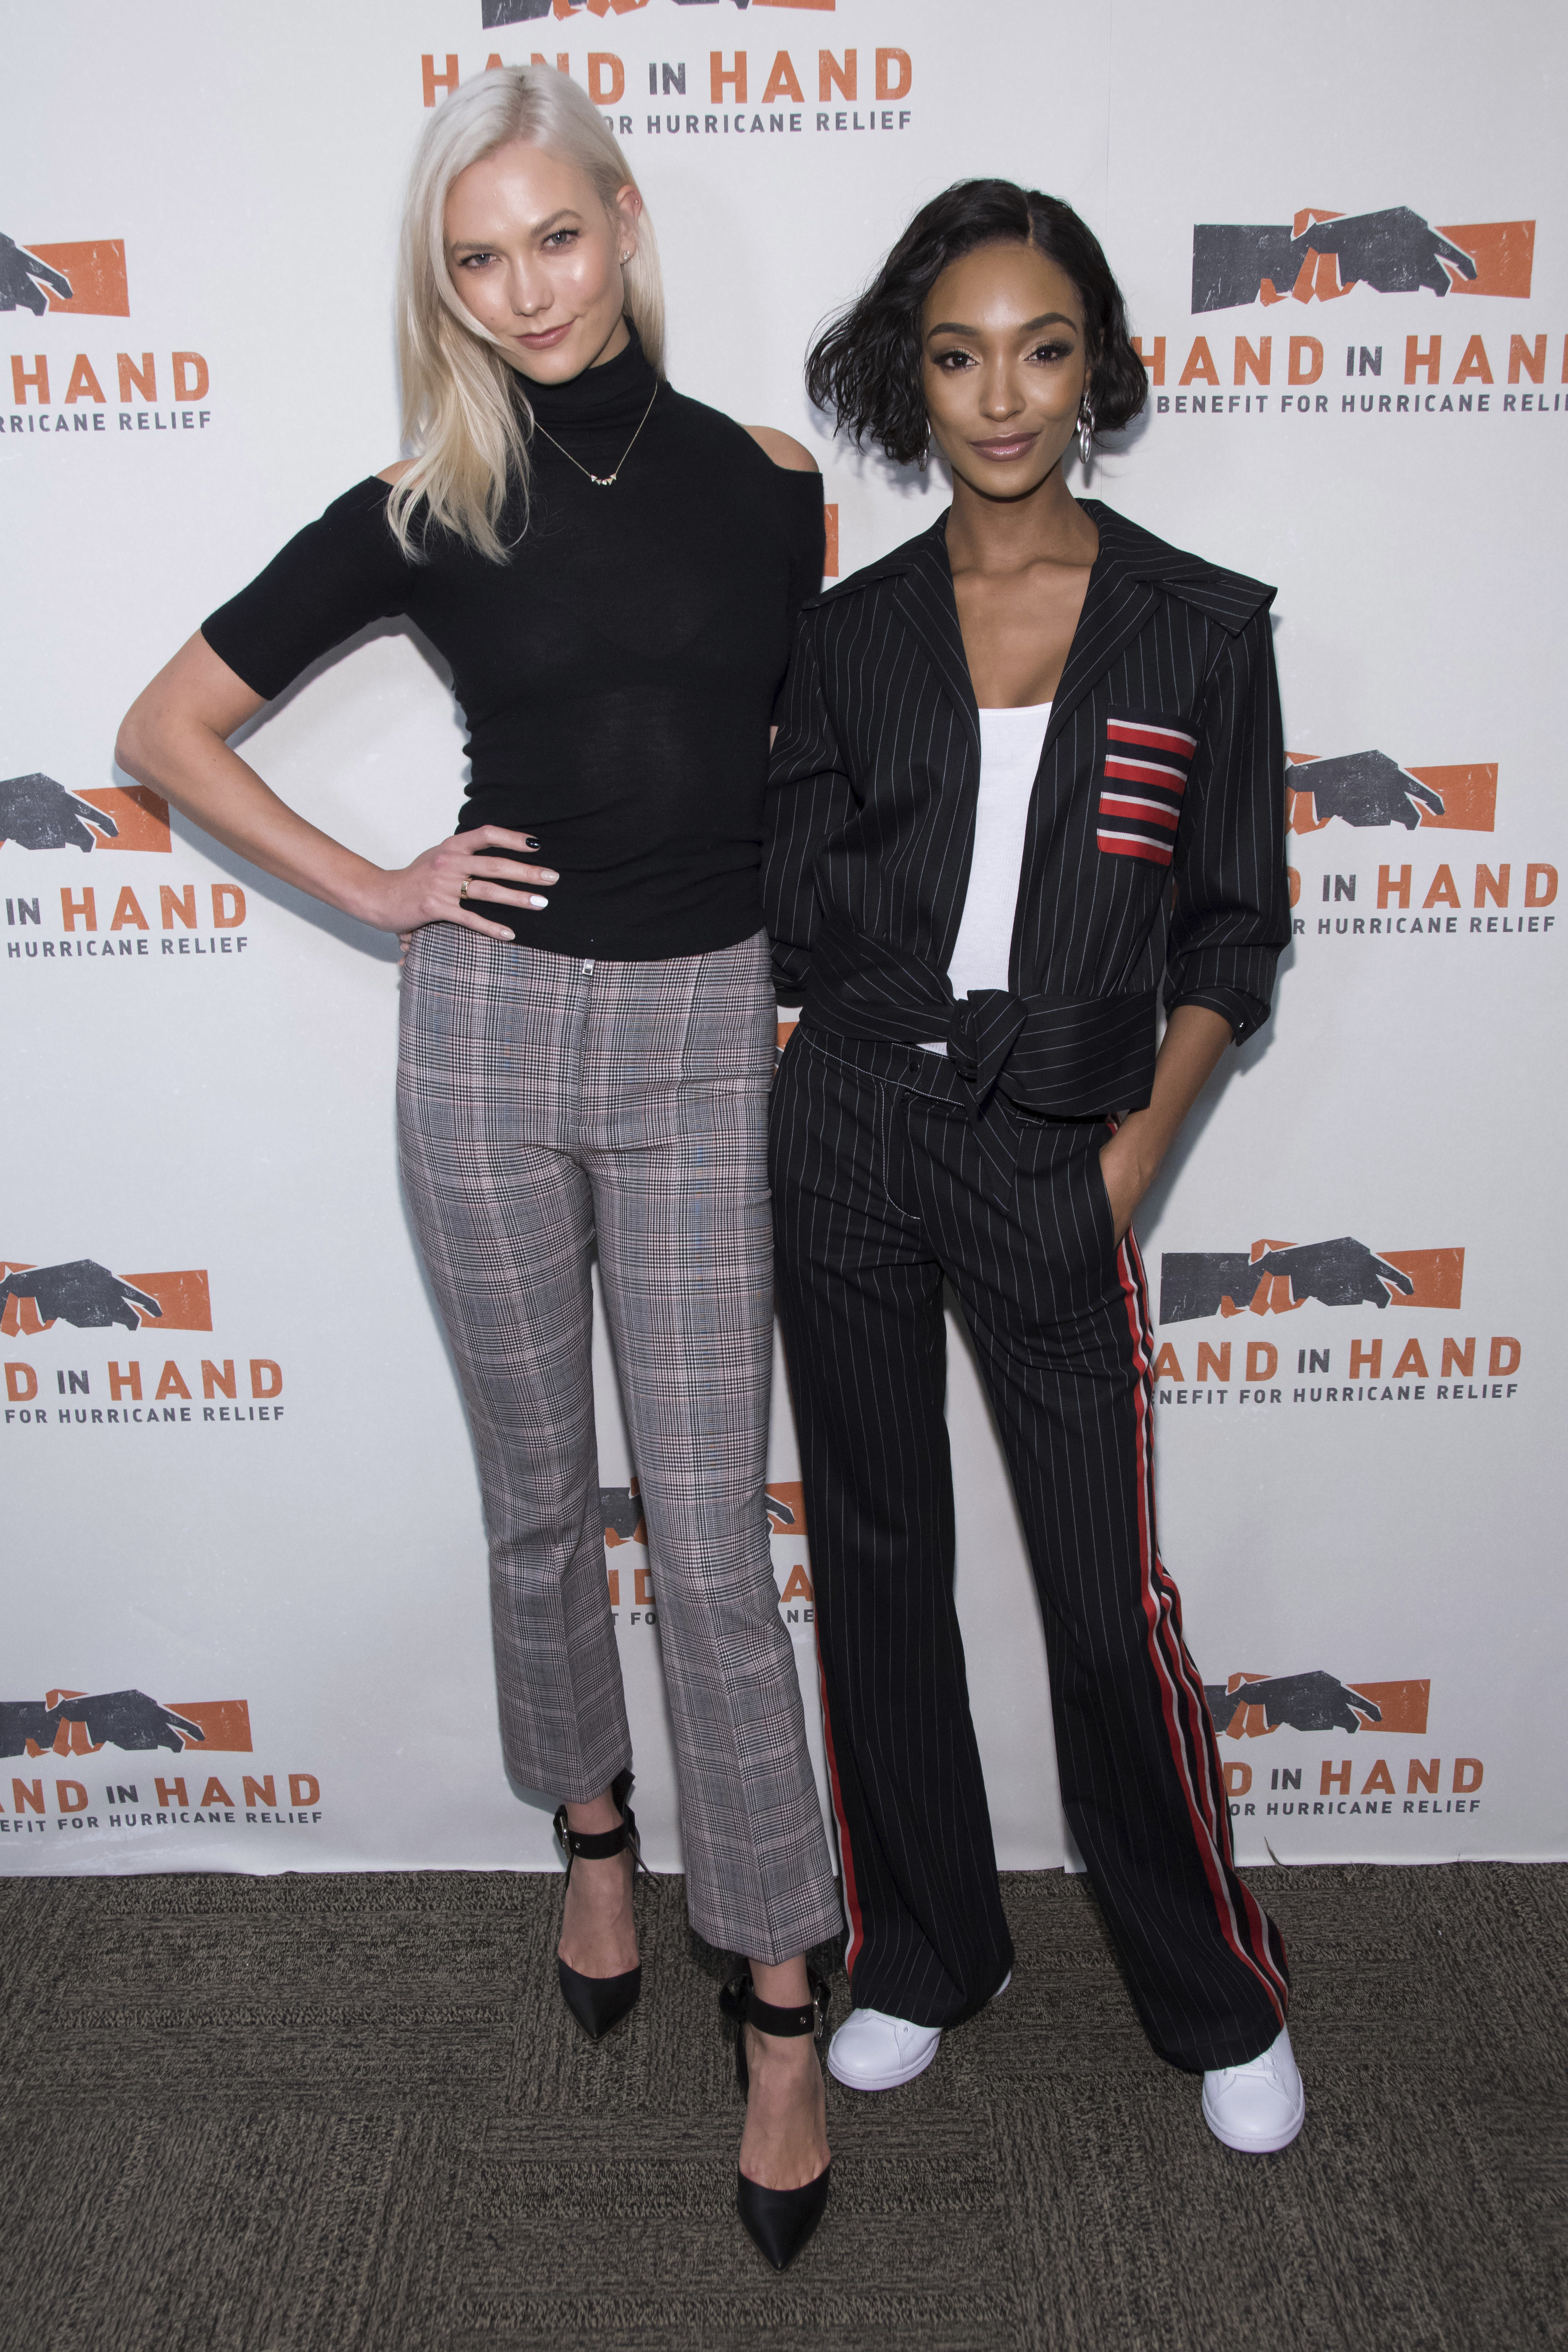 "<div class=""meta image-caption""><div class=""origin-logo origin-image none""><span>none</span></div><span class=""caption-text"">Karlie Kloss, left, and Jourdan Dunn attend Hand in Hand: A Benefit for Hurricane Harvey Relief at ABC Studios on Tuesday Sept. 12, 2017 in New York. (Charles Sykes/Invision/AP)</span></div>"